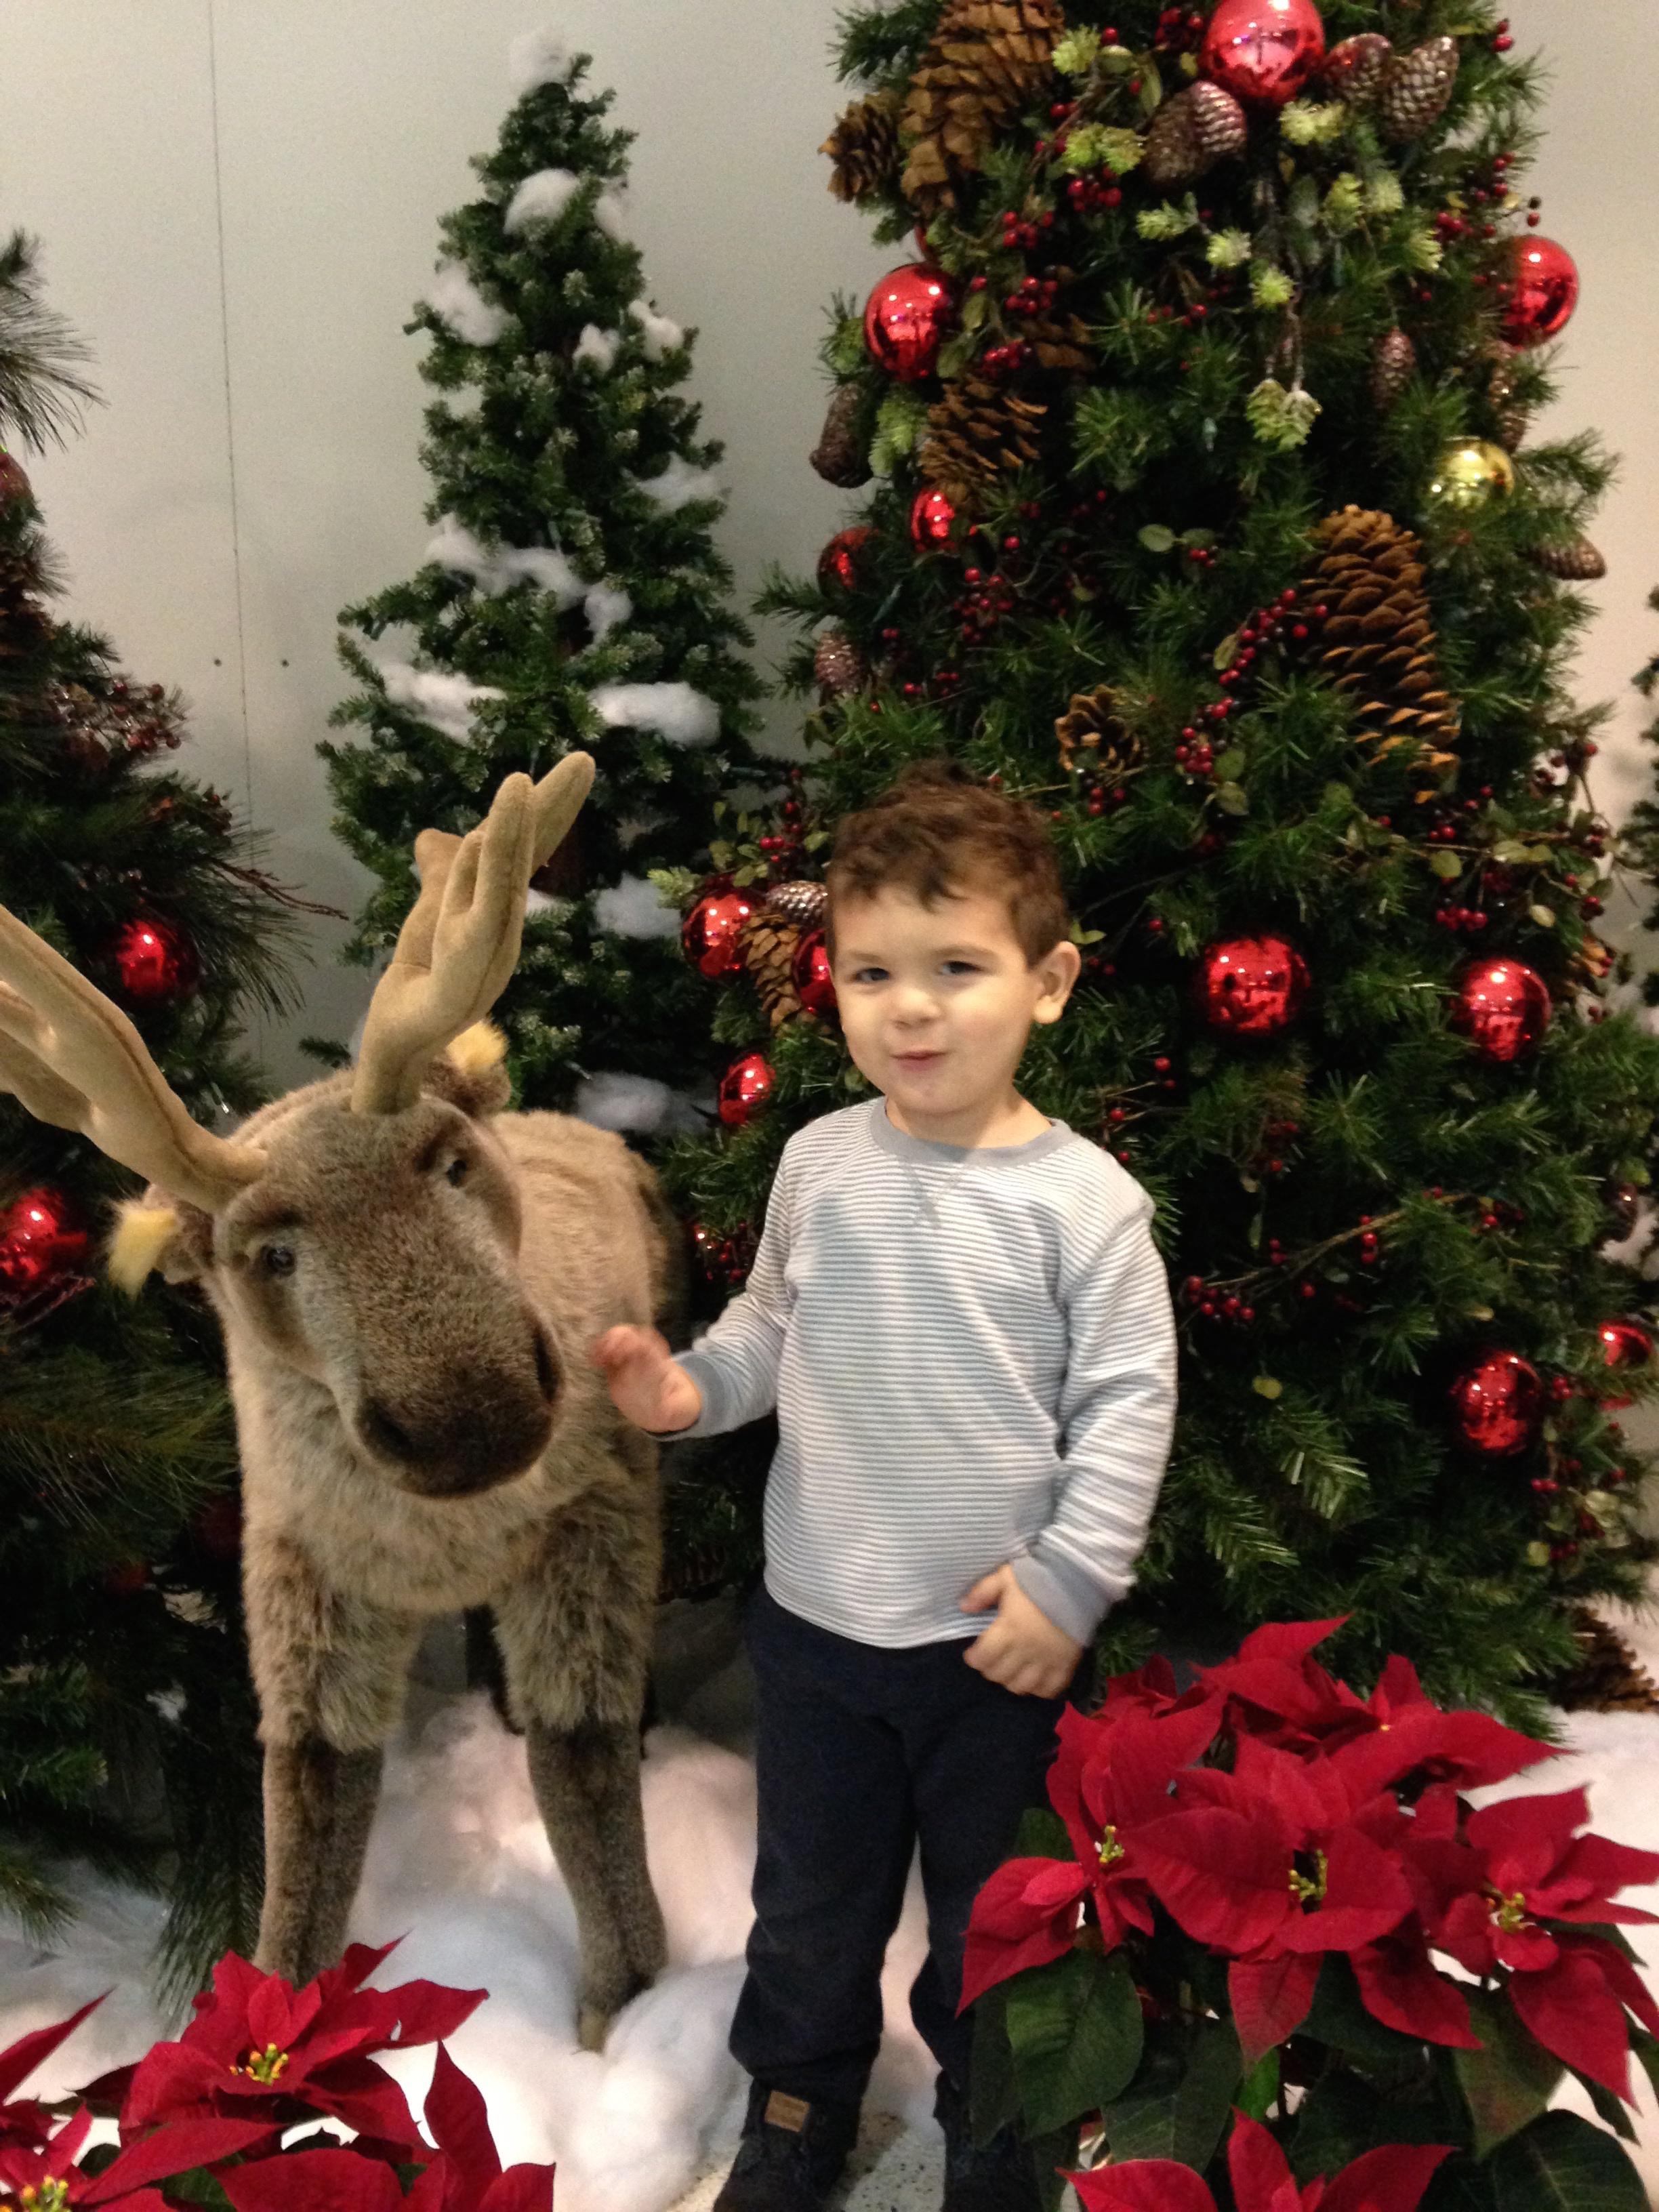 In the winter some airports have reindeer!  @CLE